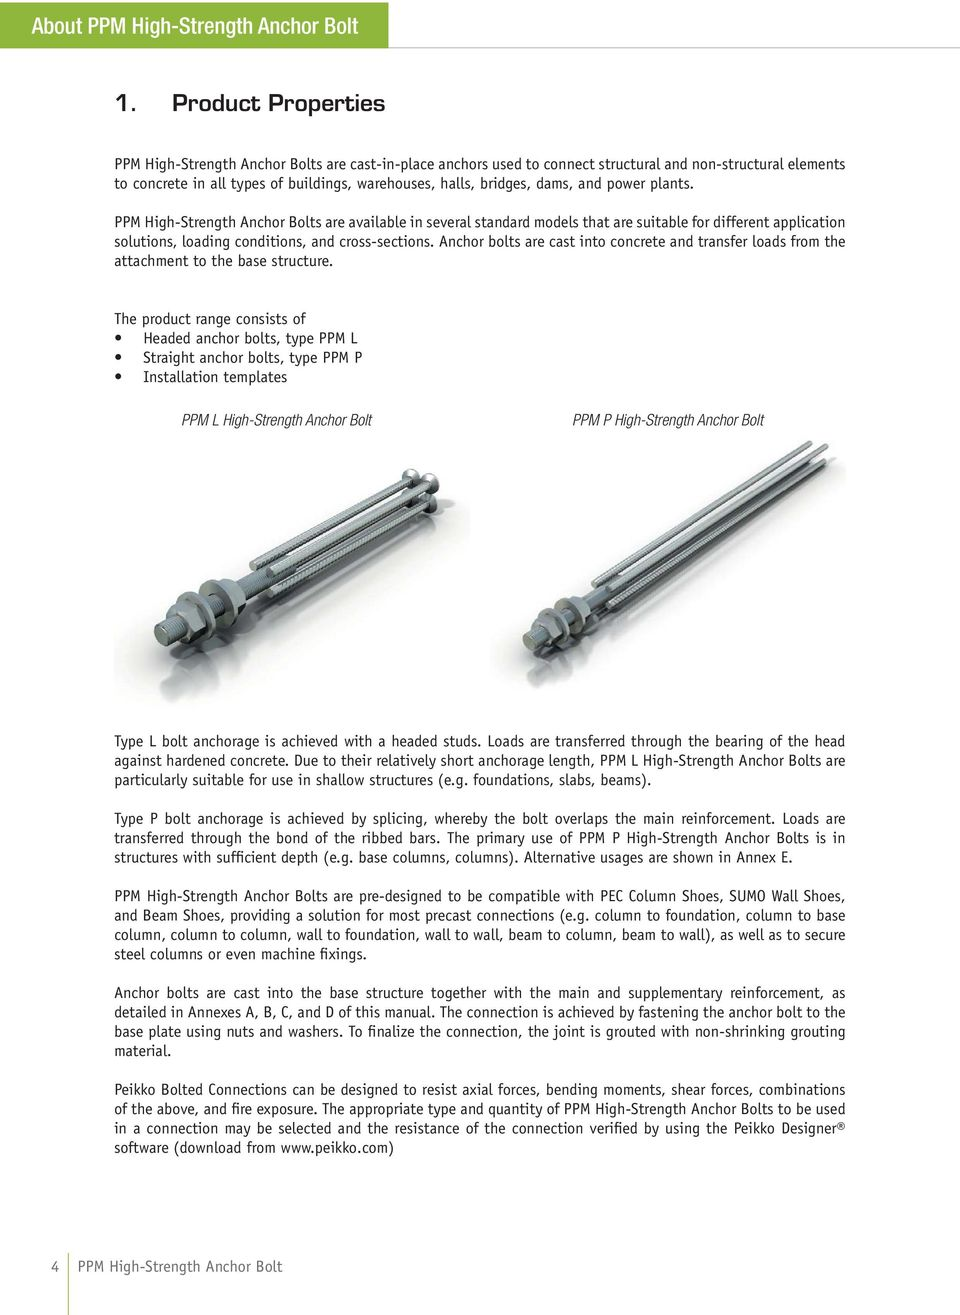 PPM High-Strength Anchor Bolt - PDF